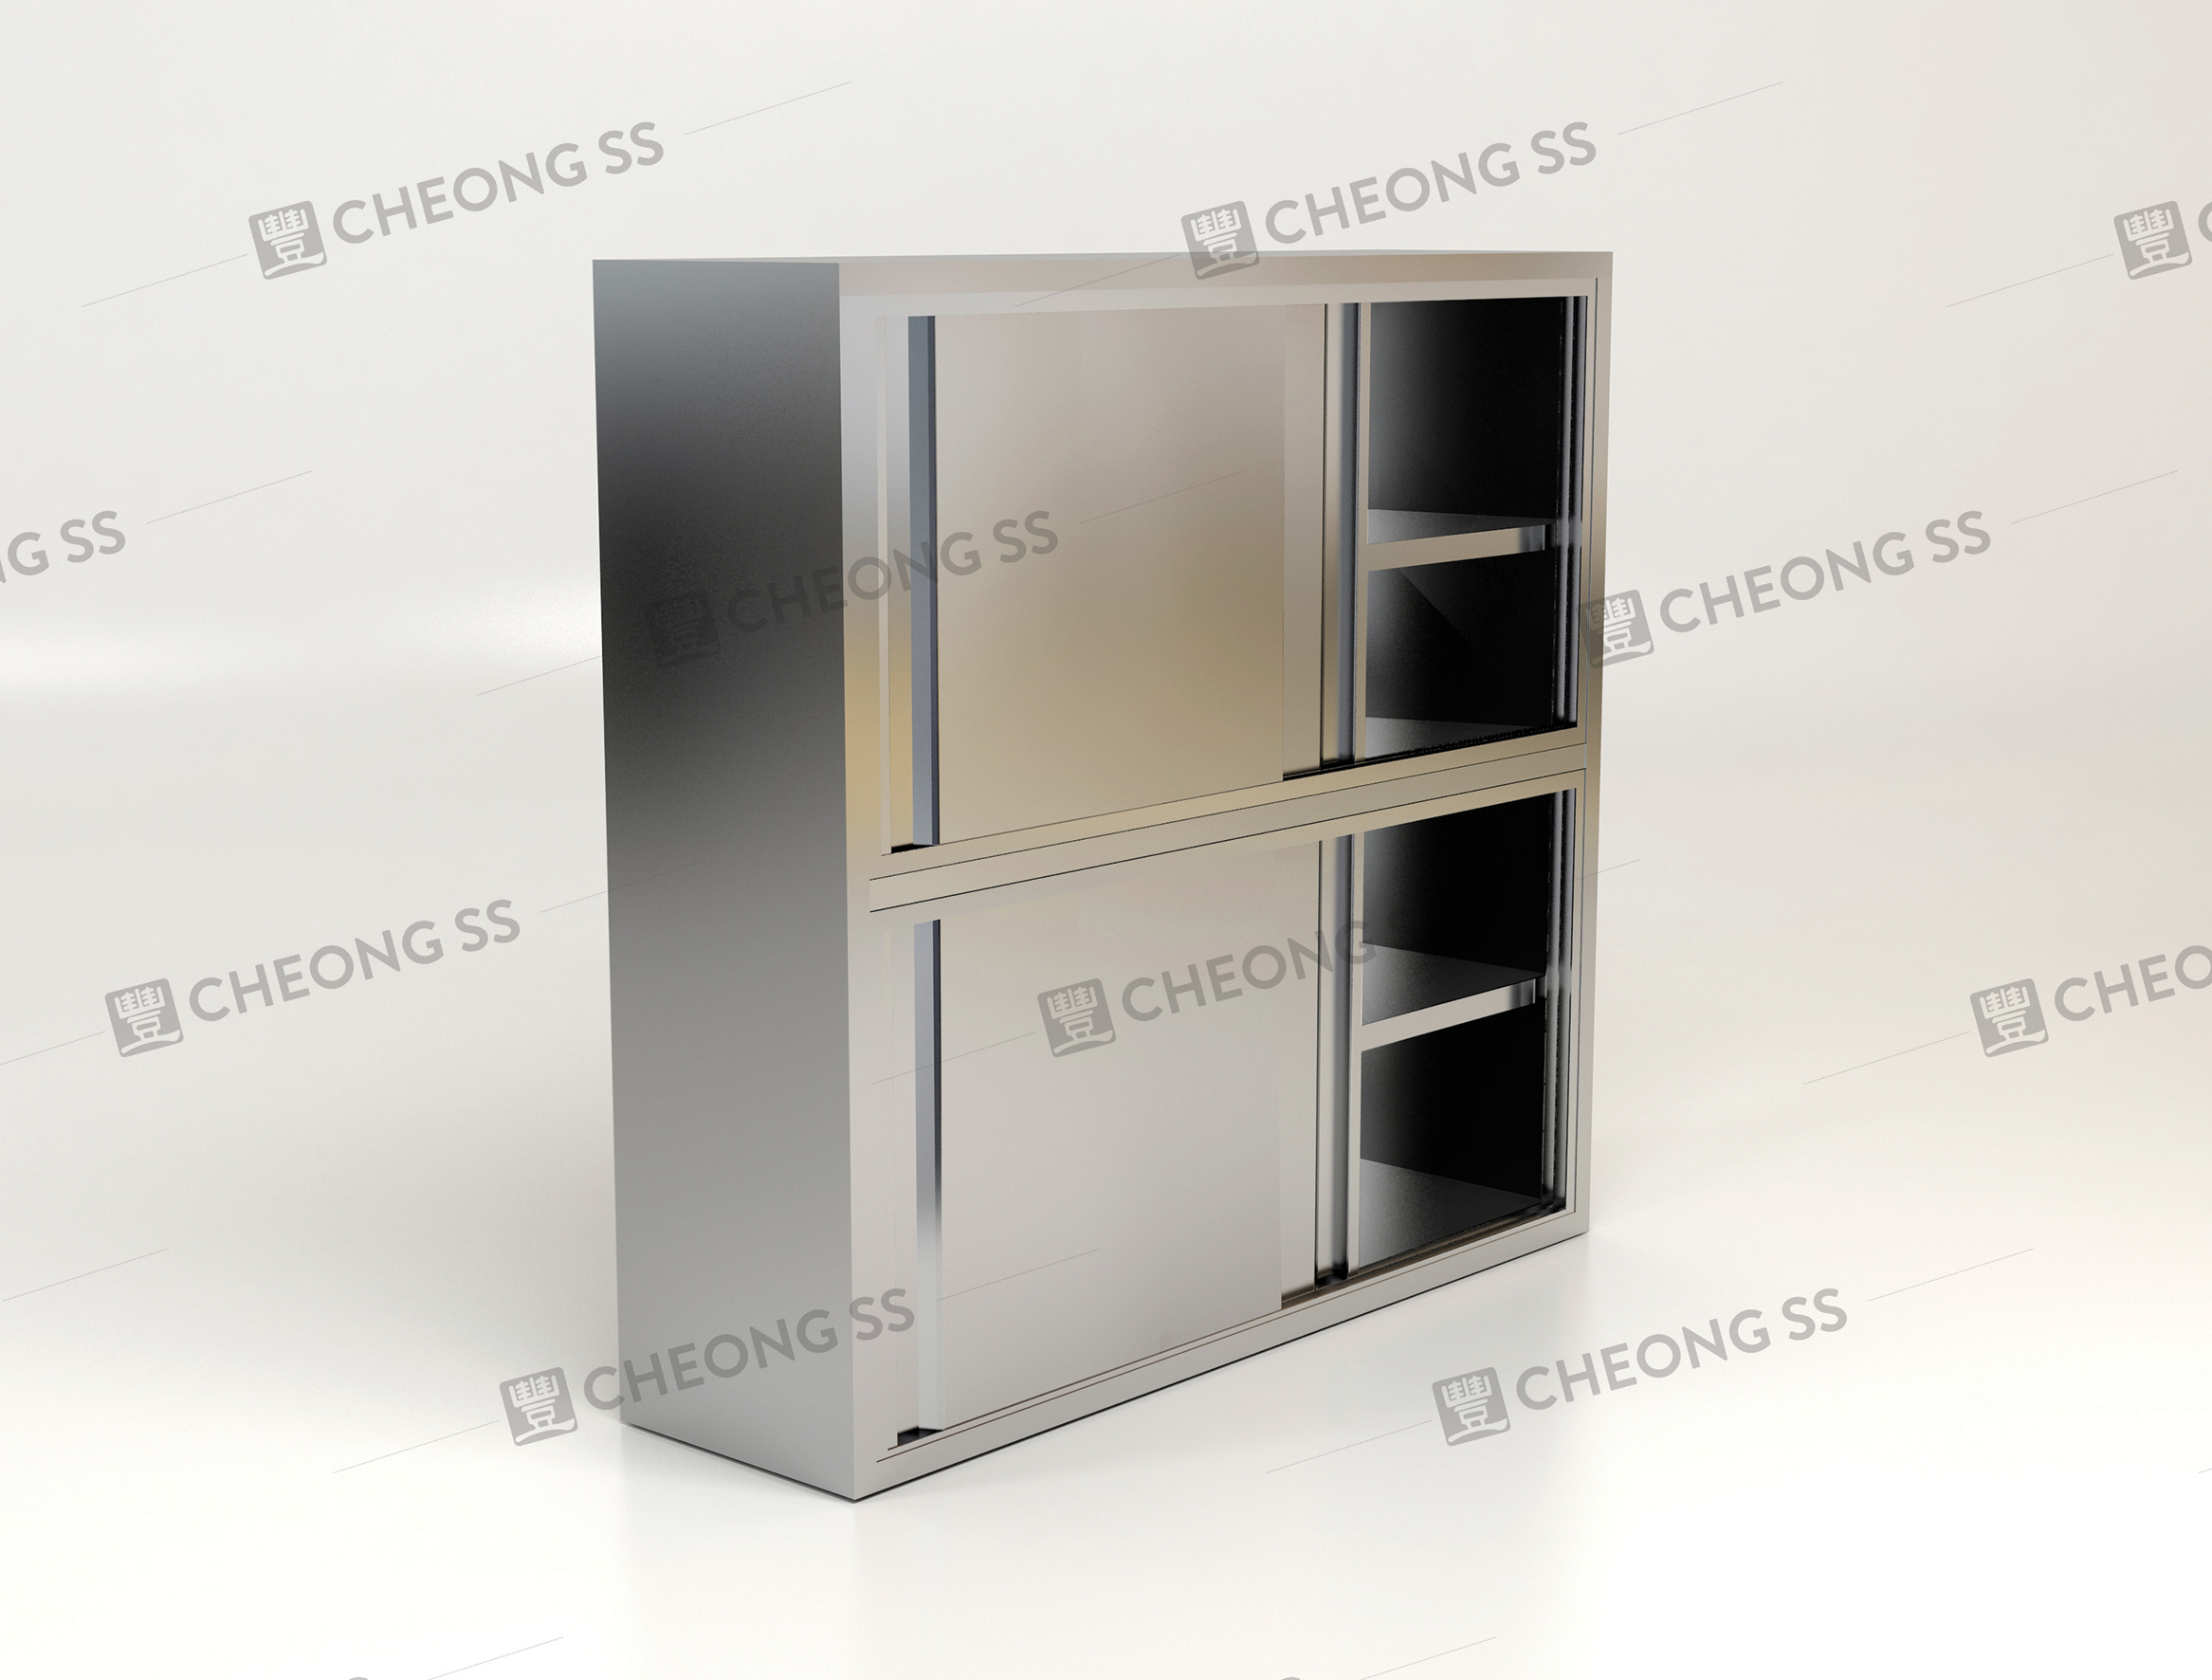 Storage Cabinet Sliding Doors Cheong Ss 5 Tier 22 Sliding Door Storage Cabinet